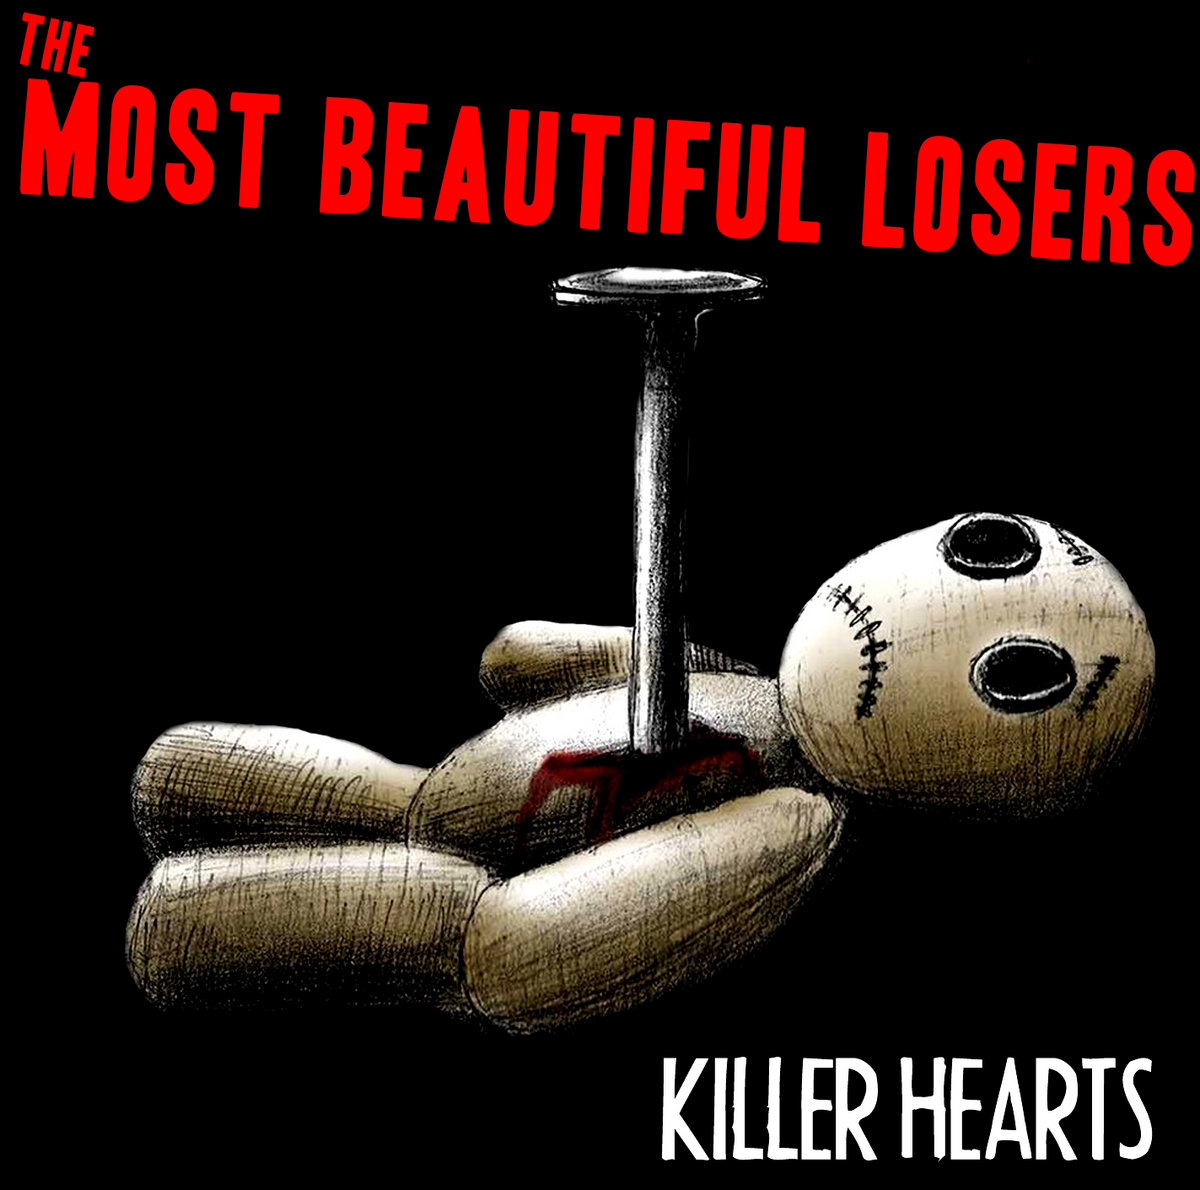 asshole | the most beautiful losers